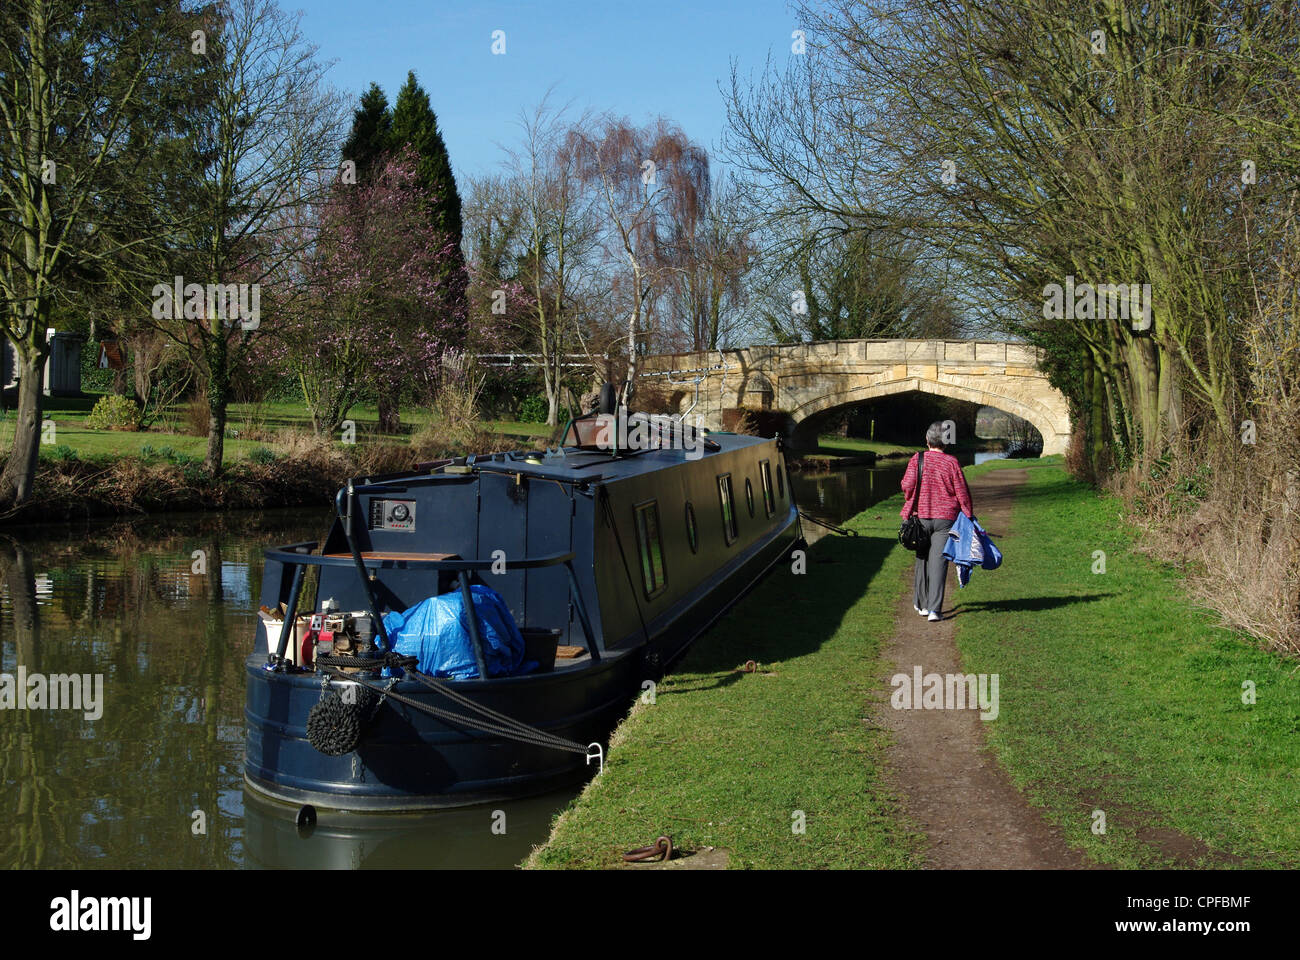 Woman walking along the canal towpath at Cosgrove, with Solomon's Bridge in the background. - Stock Image